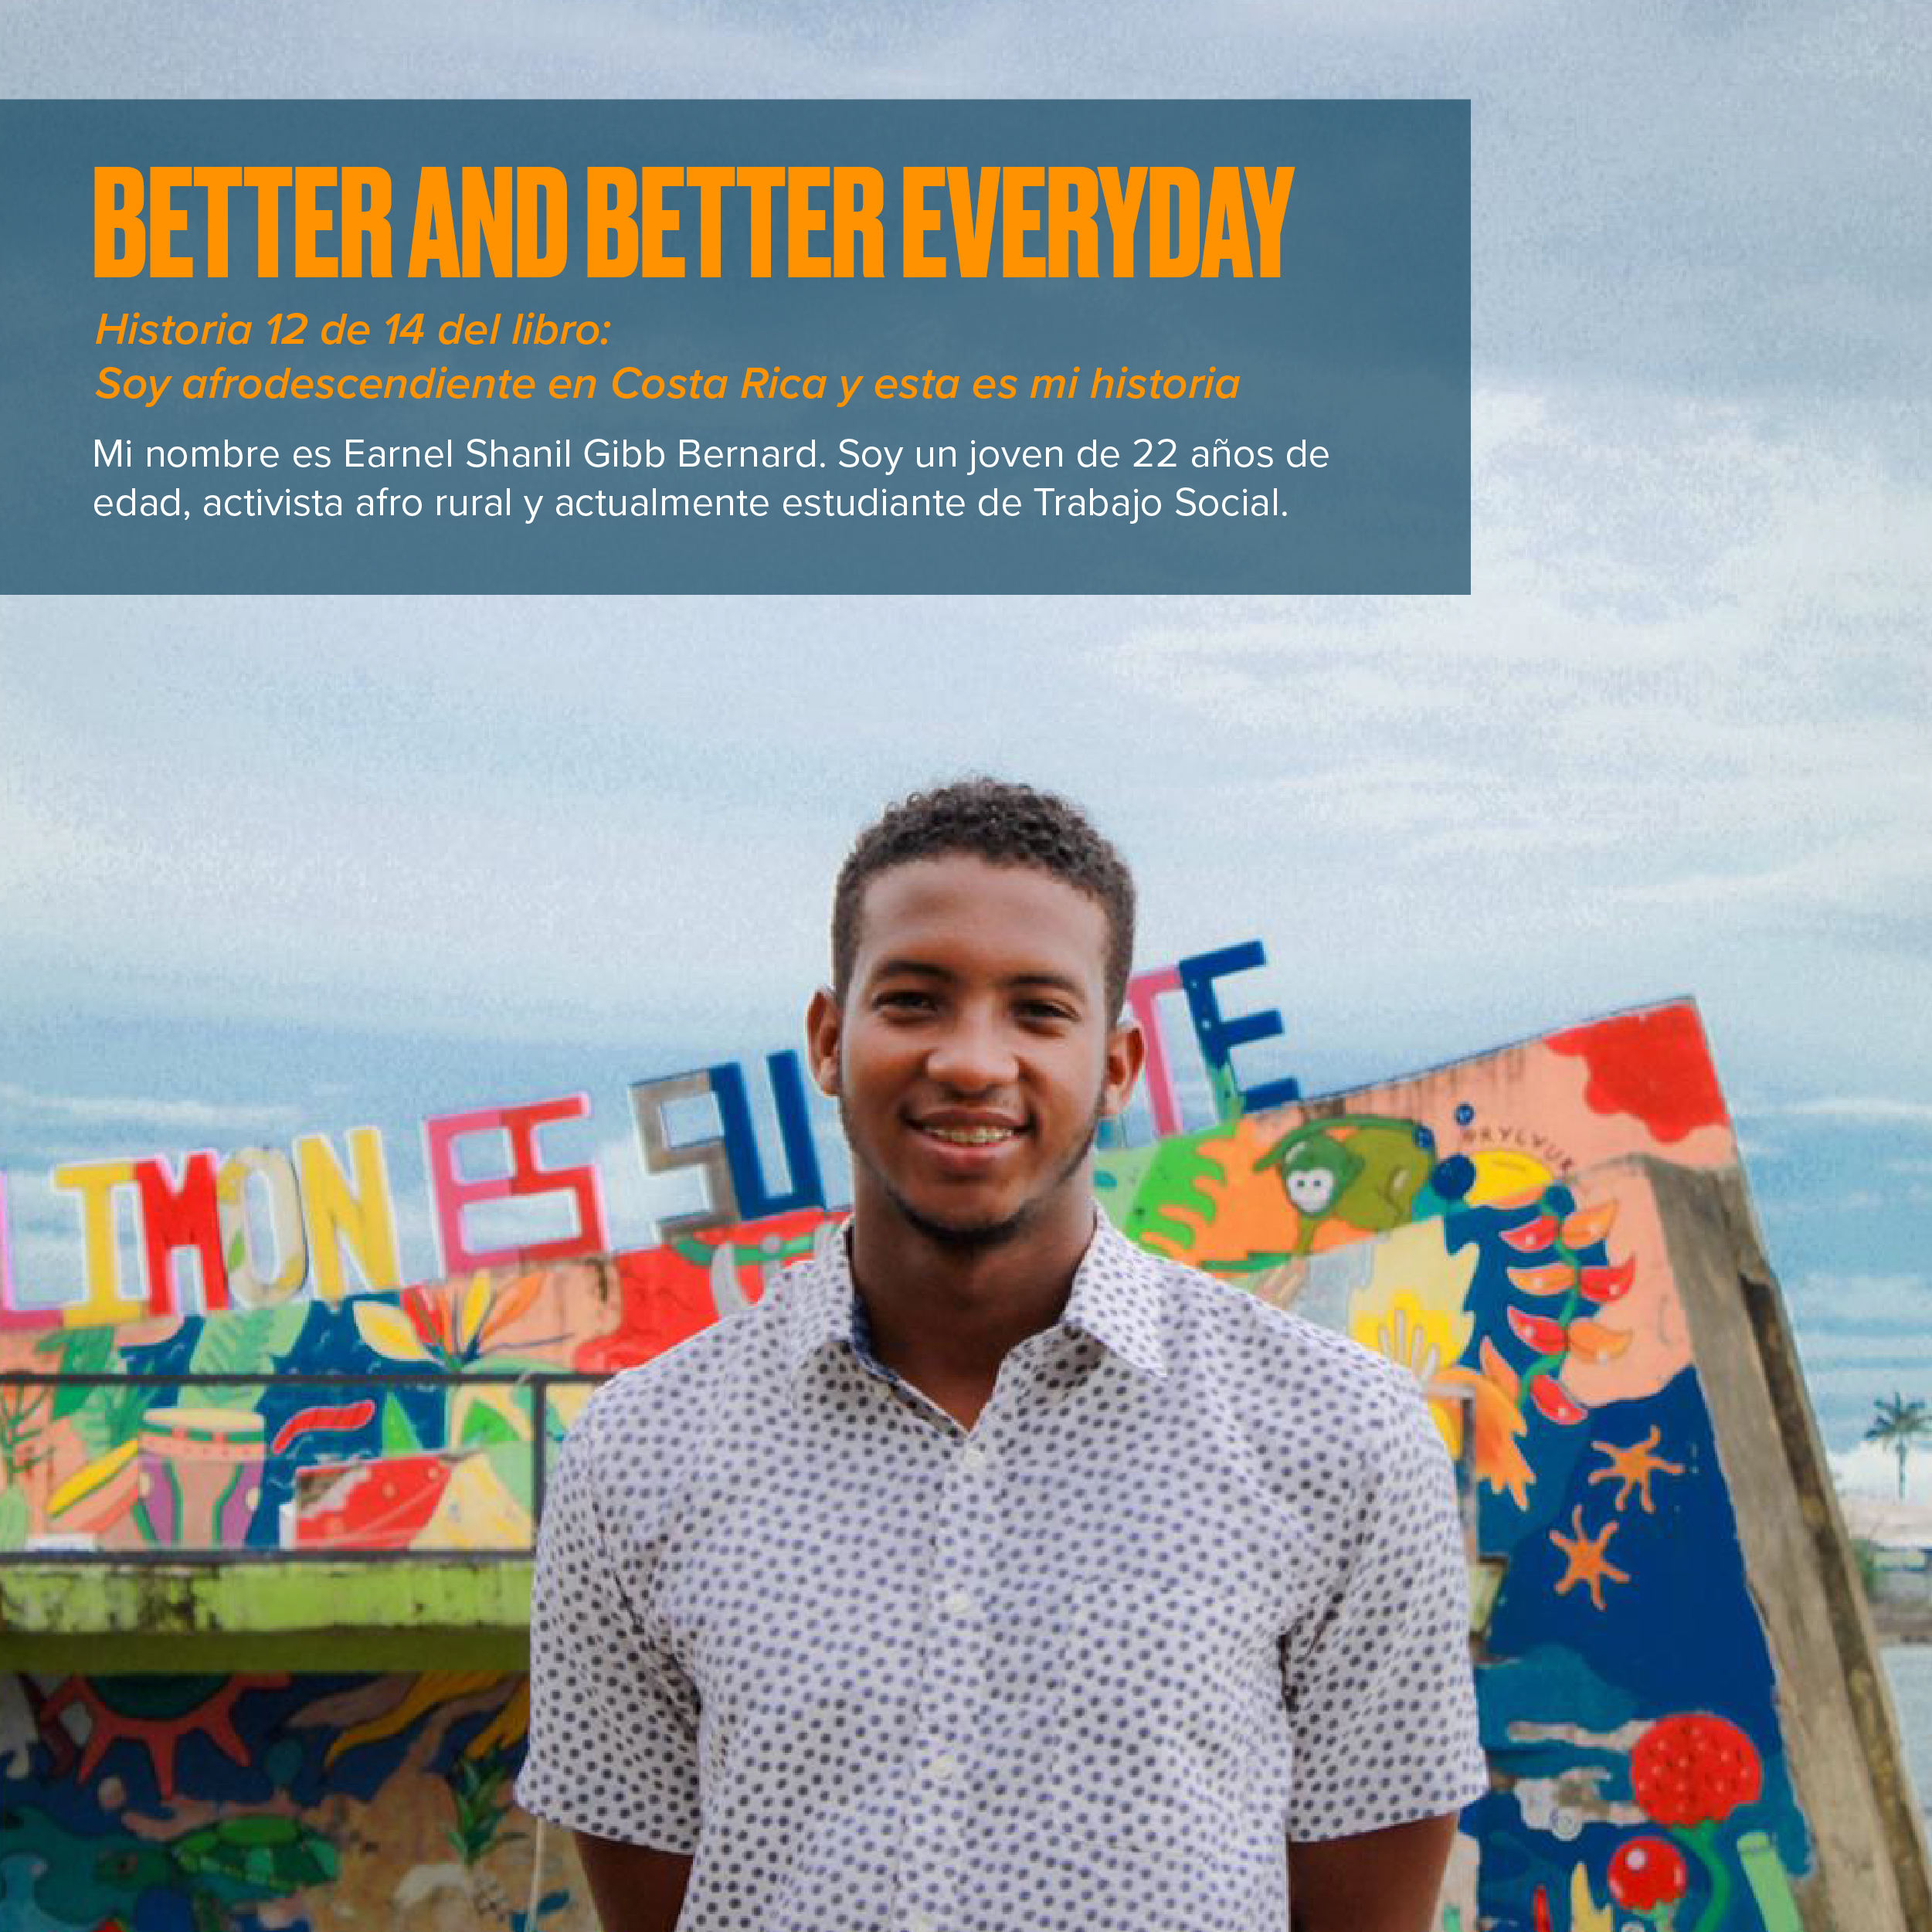 Better and better everyday: Historias afrodescendientes